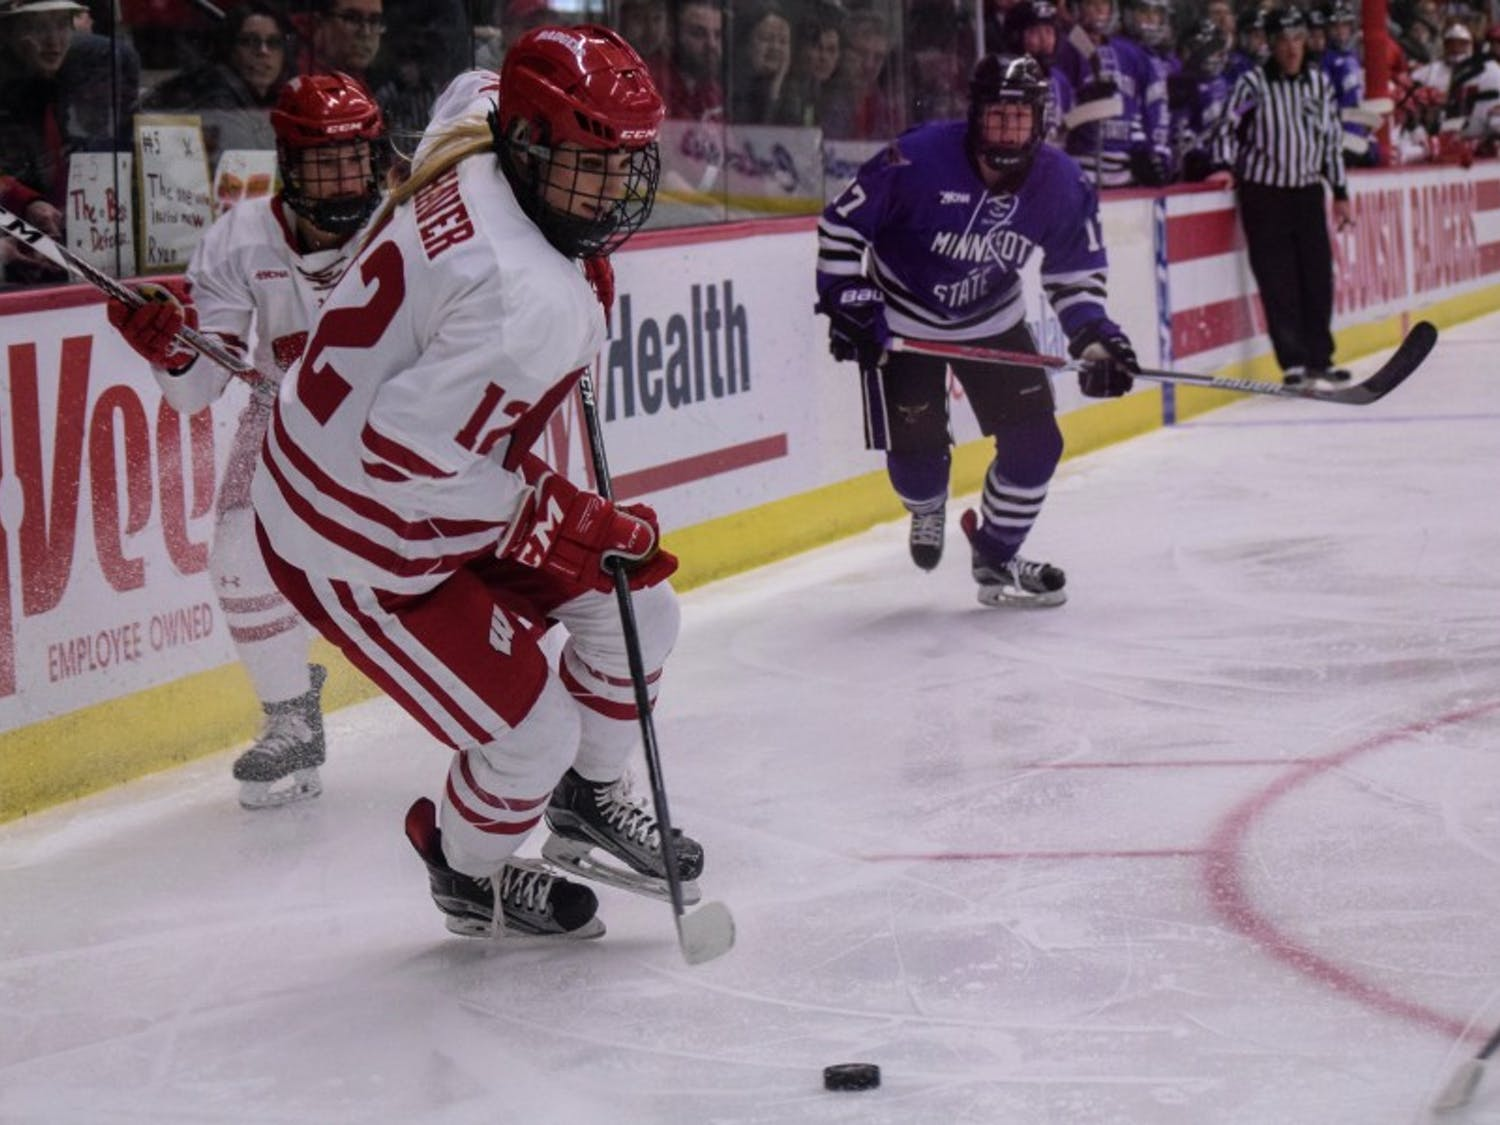 Sofia Shaver scored against Minnesota-Duluth early in the first to give UW a 2-0 lead.